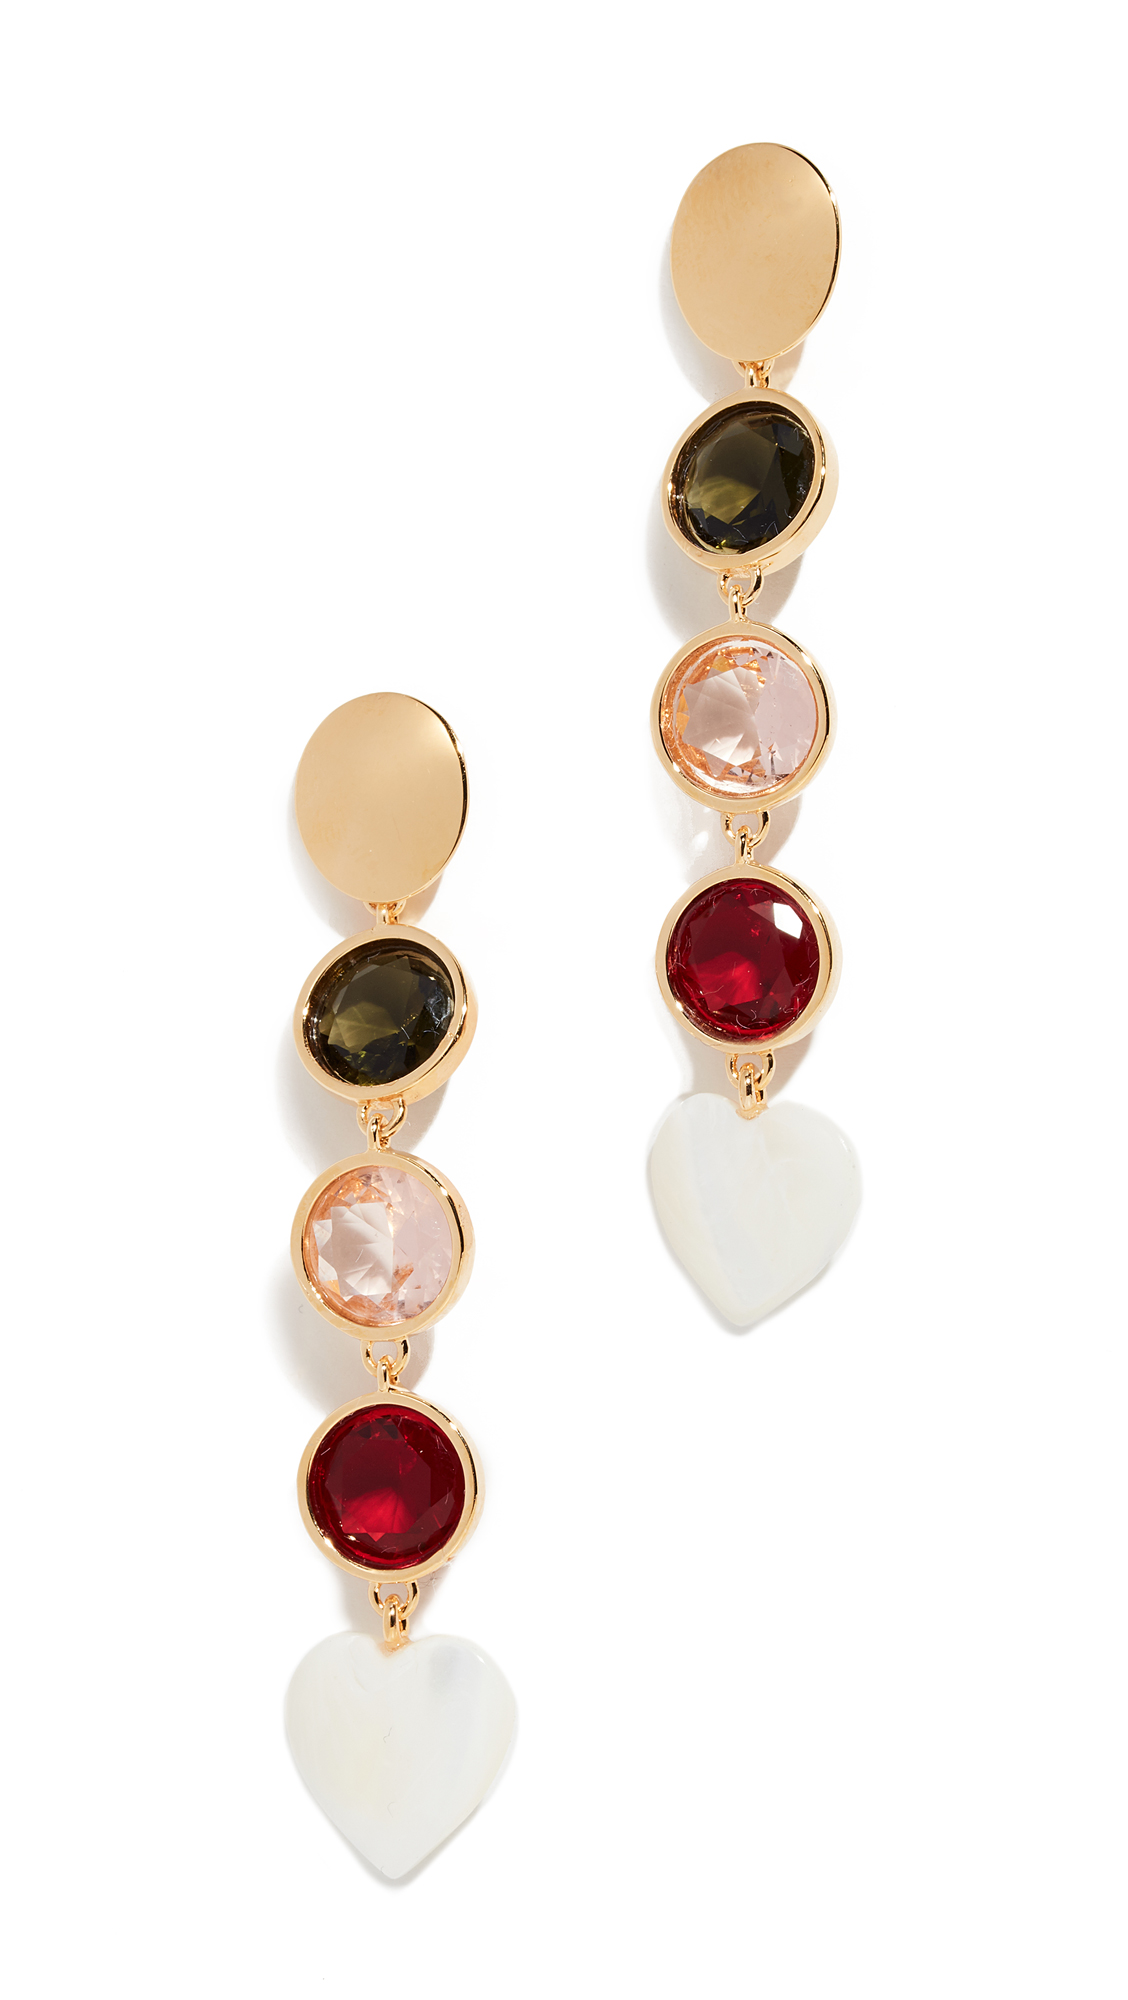 LIZZIE FORTUNATO Nonna Gold-Plated Crystal Earrings in Yellow Gold/Multi